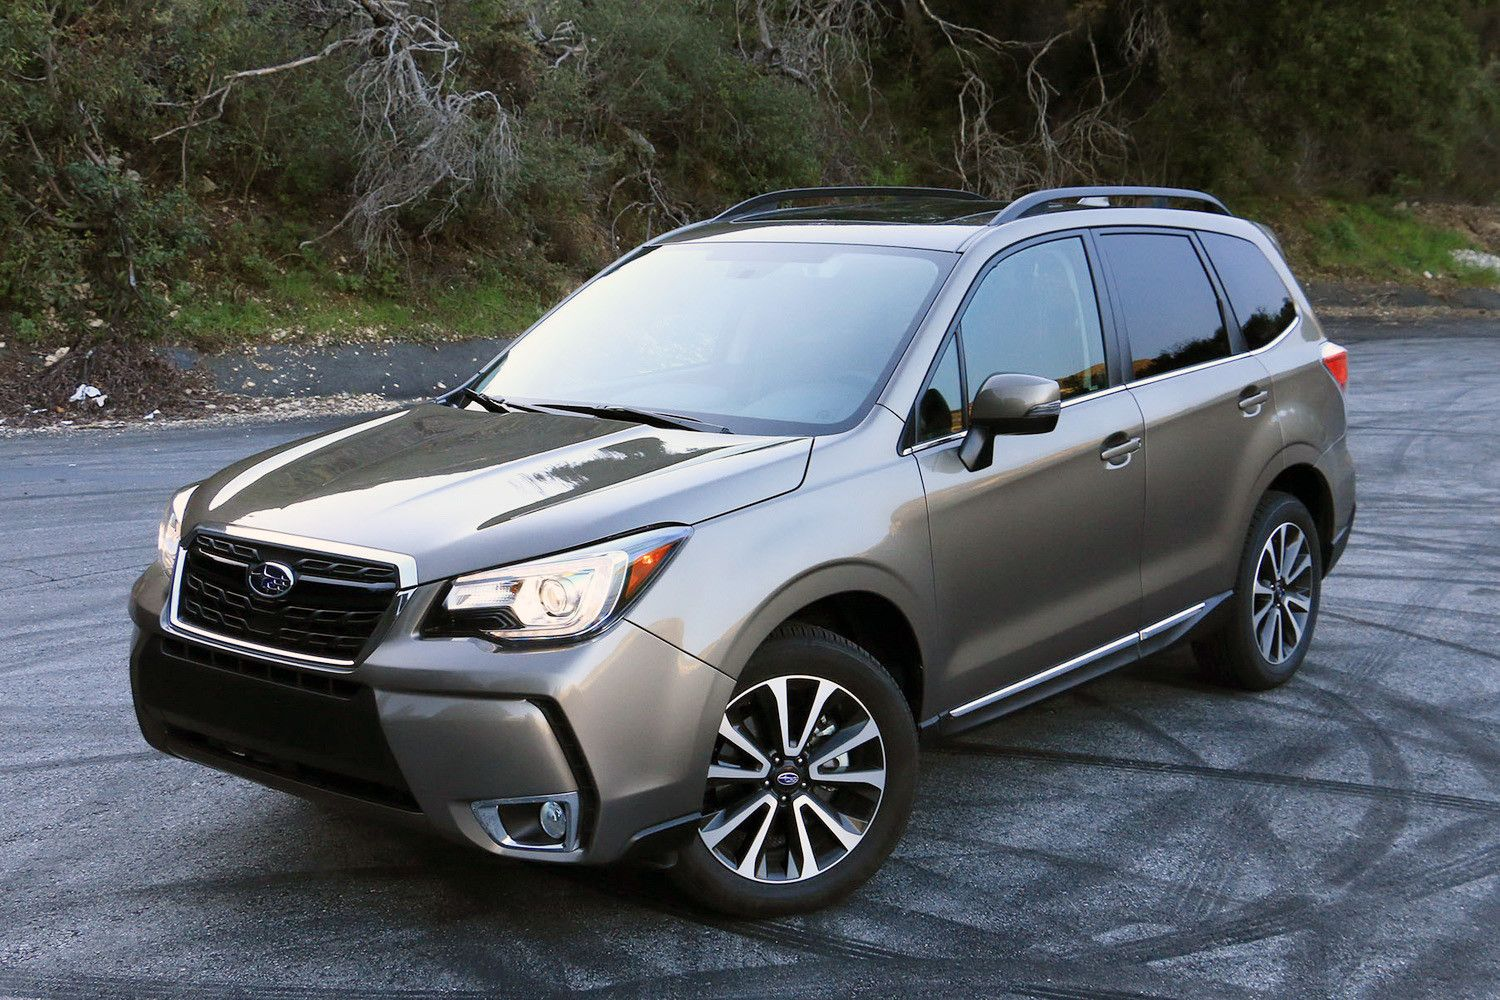 Subaru S 2017 Forester 2 0xt Touring Works Wrx Tech Into A Feature Rich Awd Ride Sports Car List Sports Cars Subaru Forester